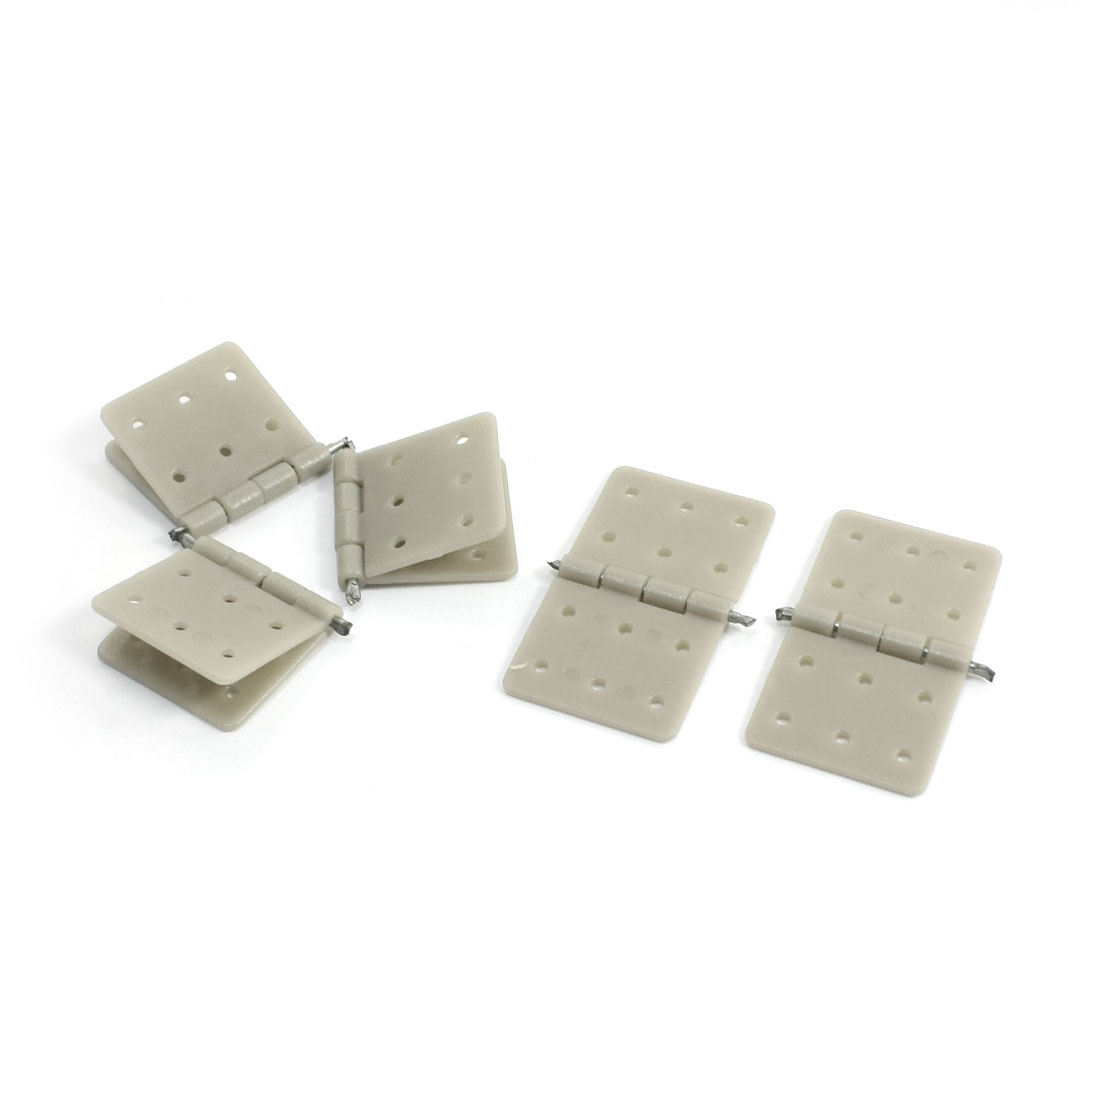 5pcs DIY RC Model Aircraft Parts 20x36mm Nylon Pinned Hinges Gray